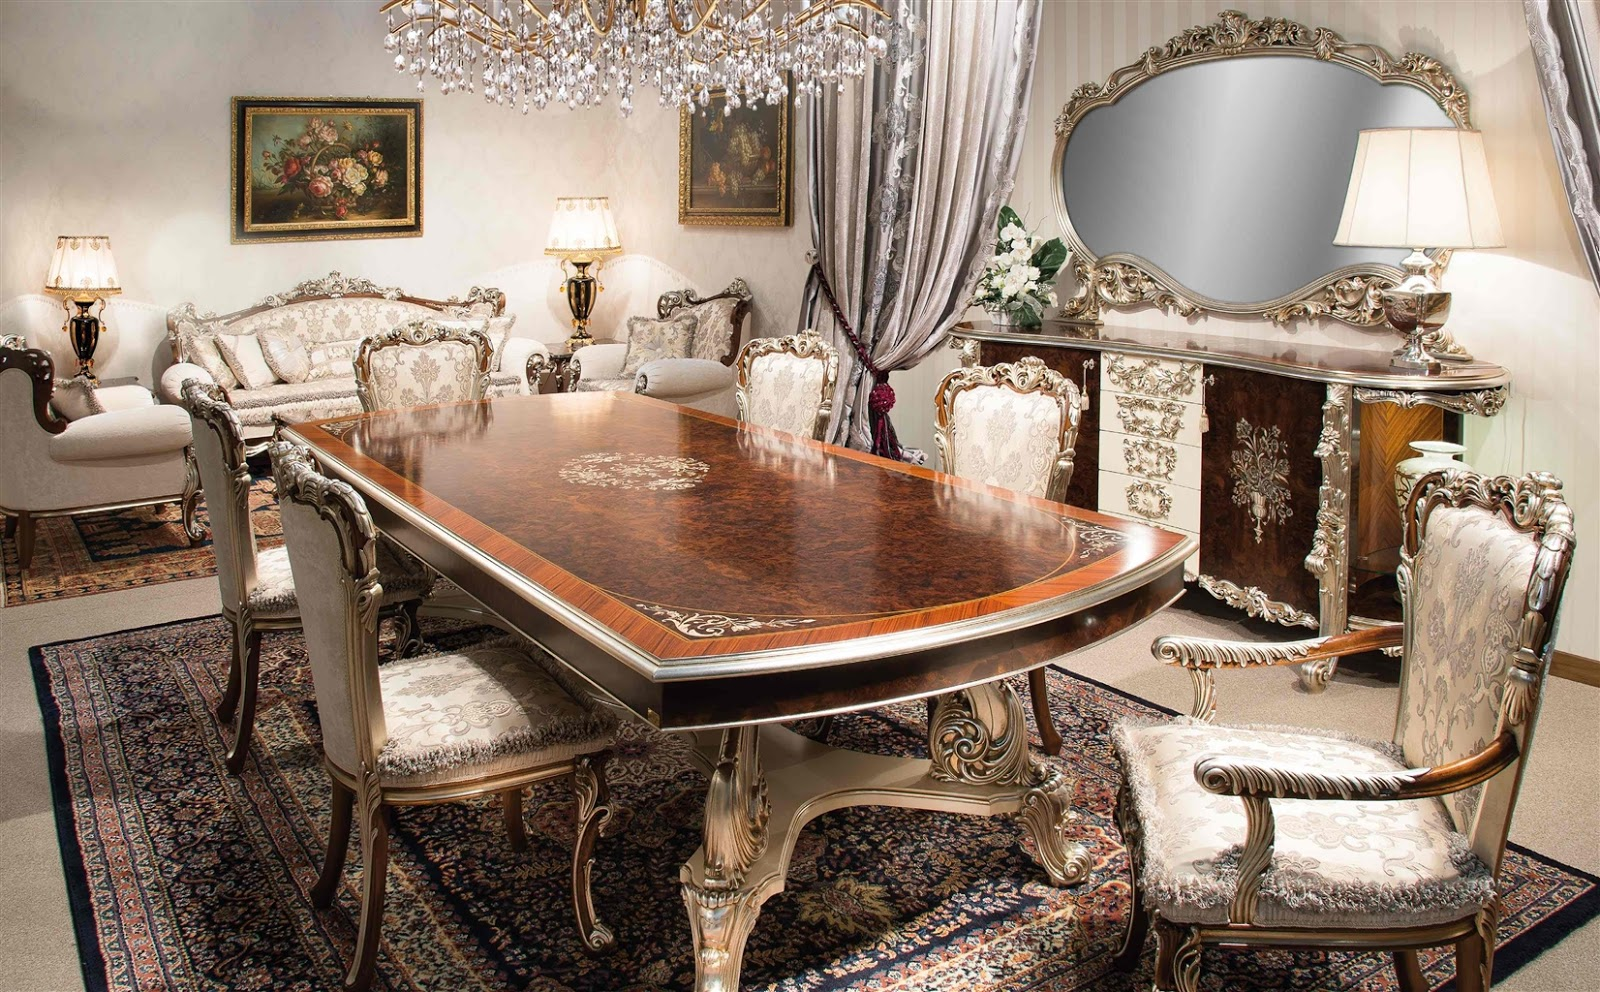 Luxury Dining Room Furniture Top 3 Shopping Guide Page 2 M O Du